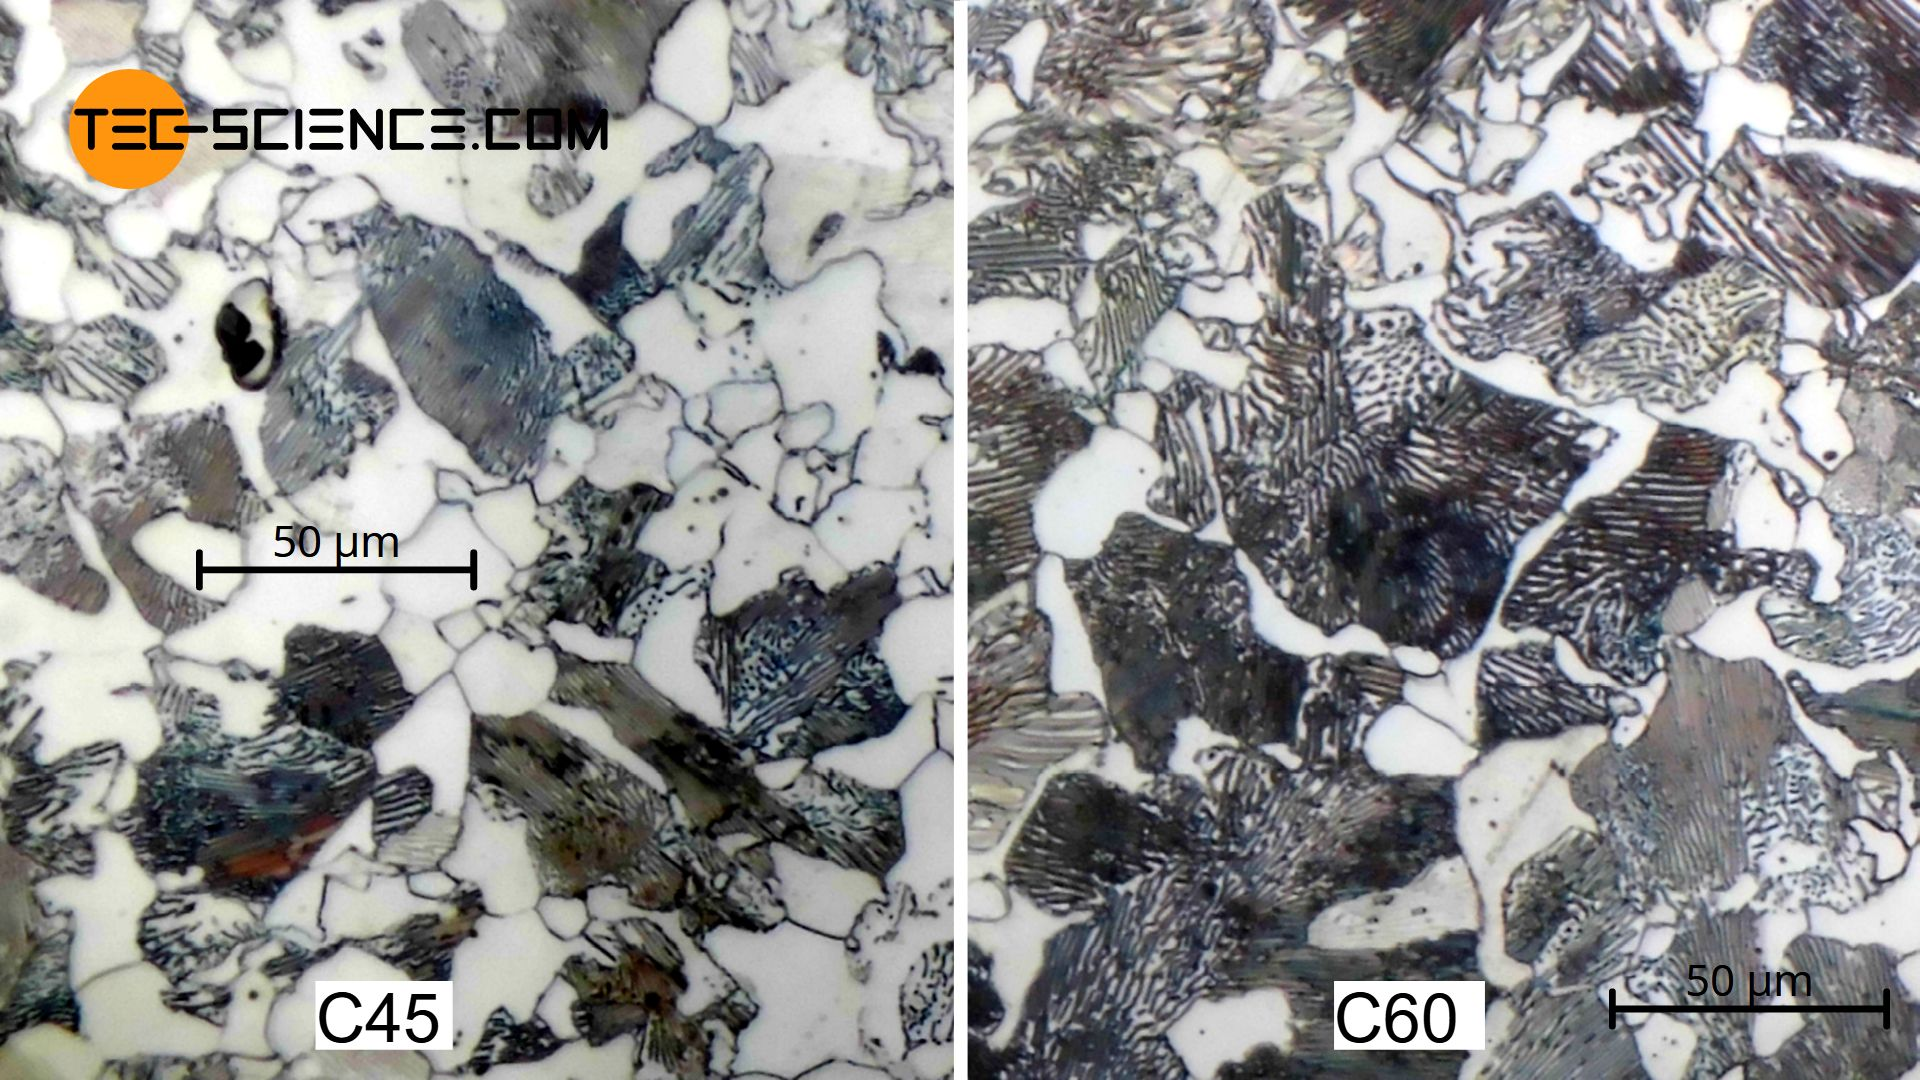 Micrograph of hypoeutectoid steel with a carbon content of 0.45 (C45) and 0.6 % (C60)